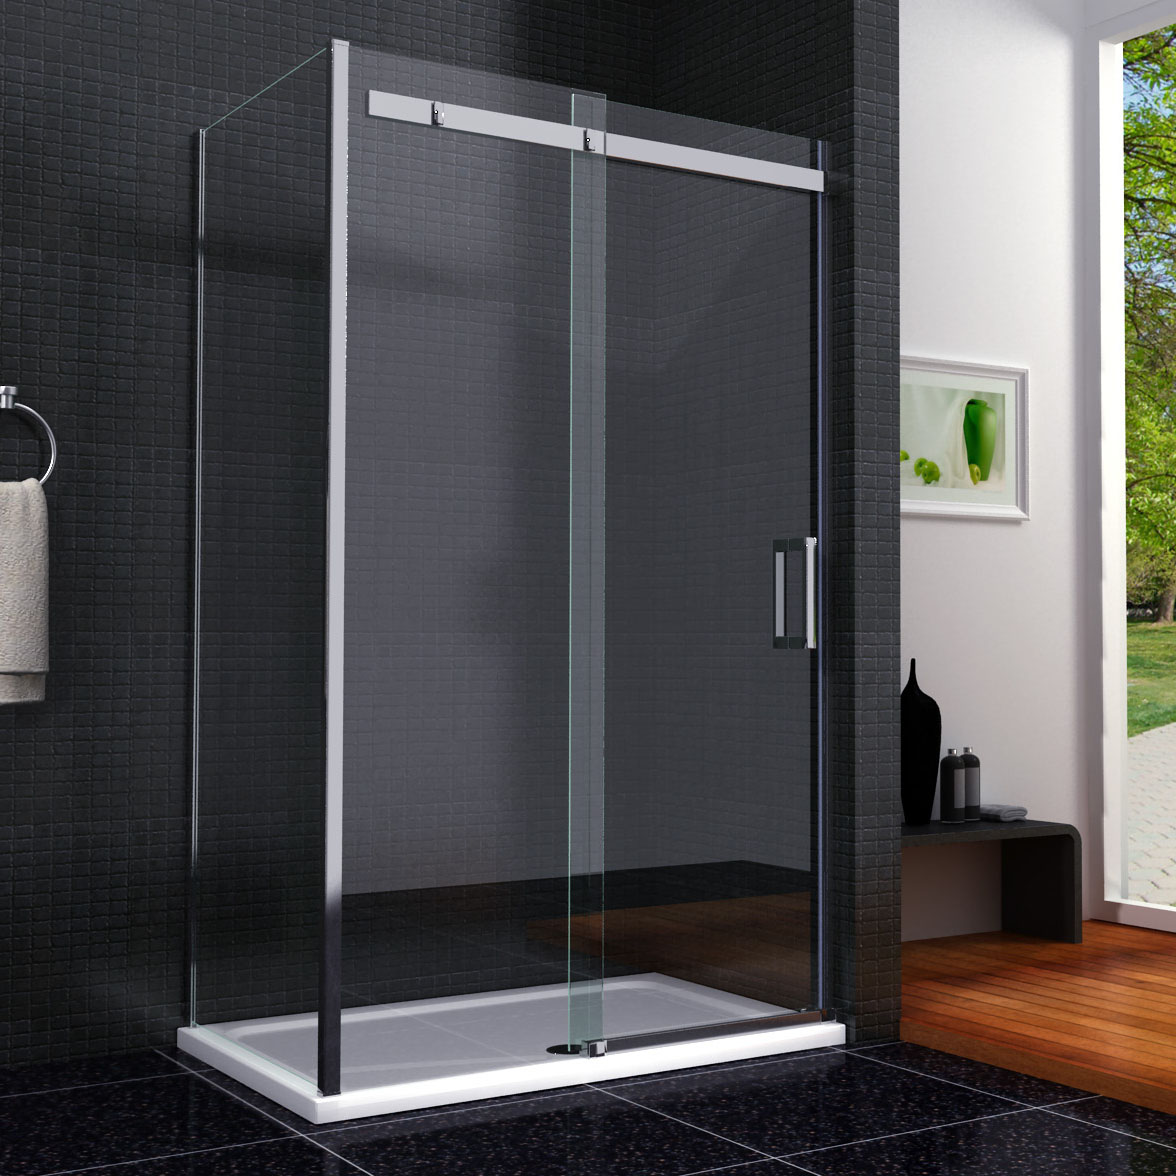 Details About Frameless Sliding Shower Door Enclosure 8mm Nano Glass Screen Side Panel Tray